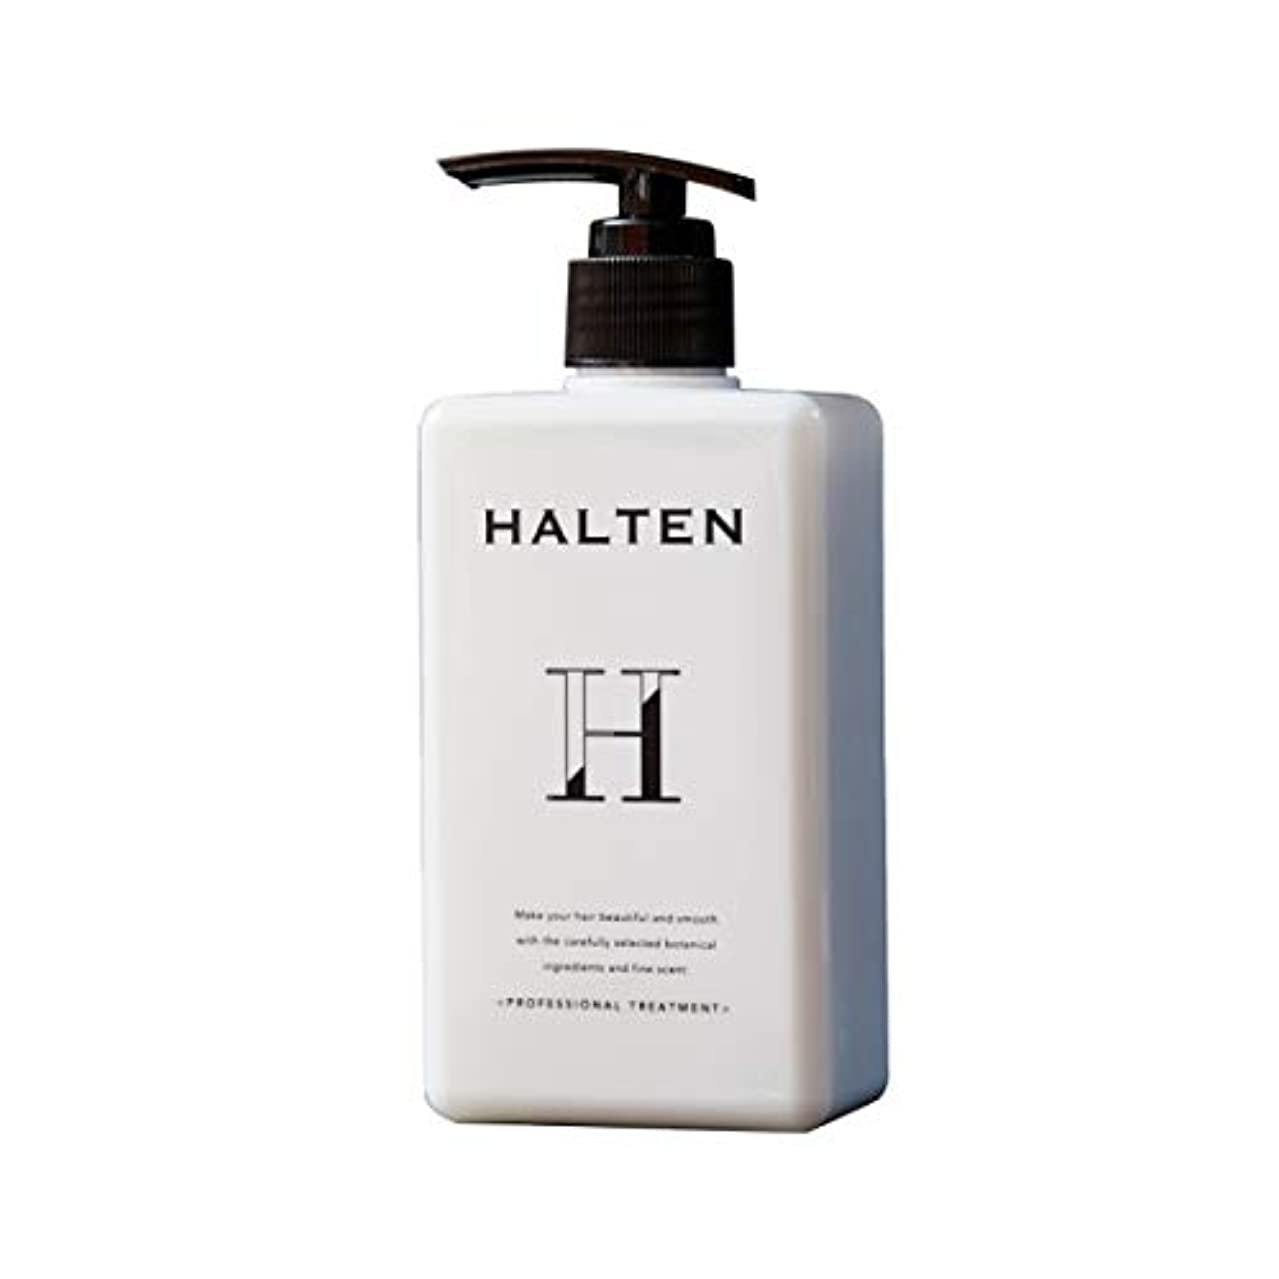 HALTEN PROFESSIONAL TREATMENT